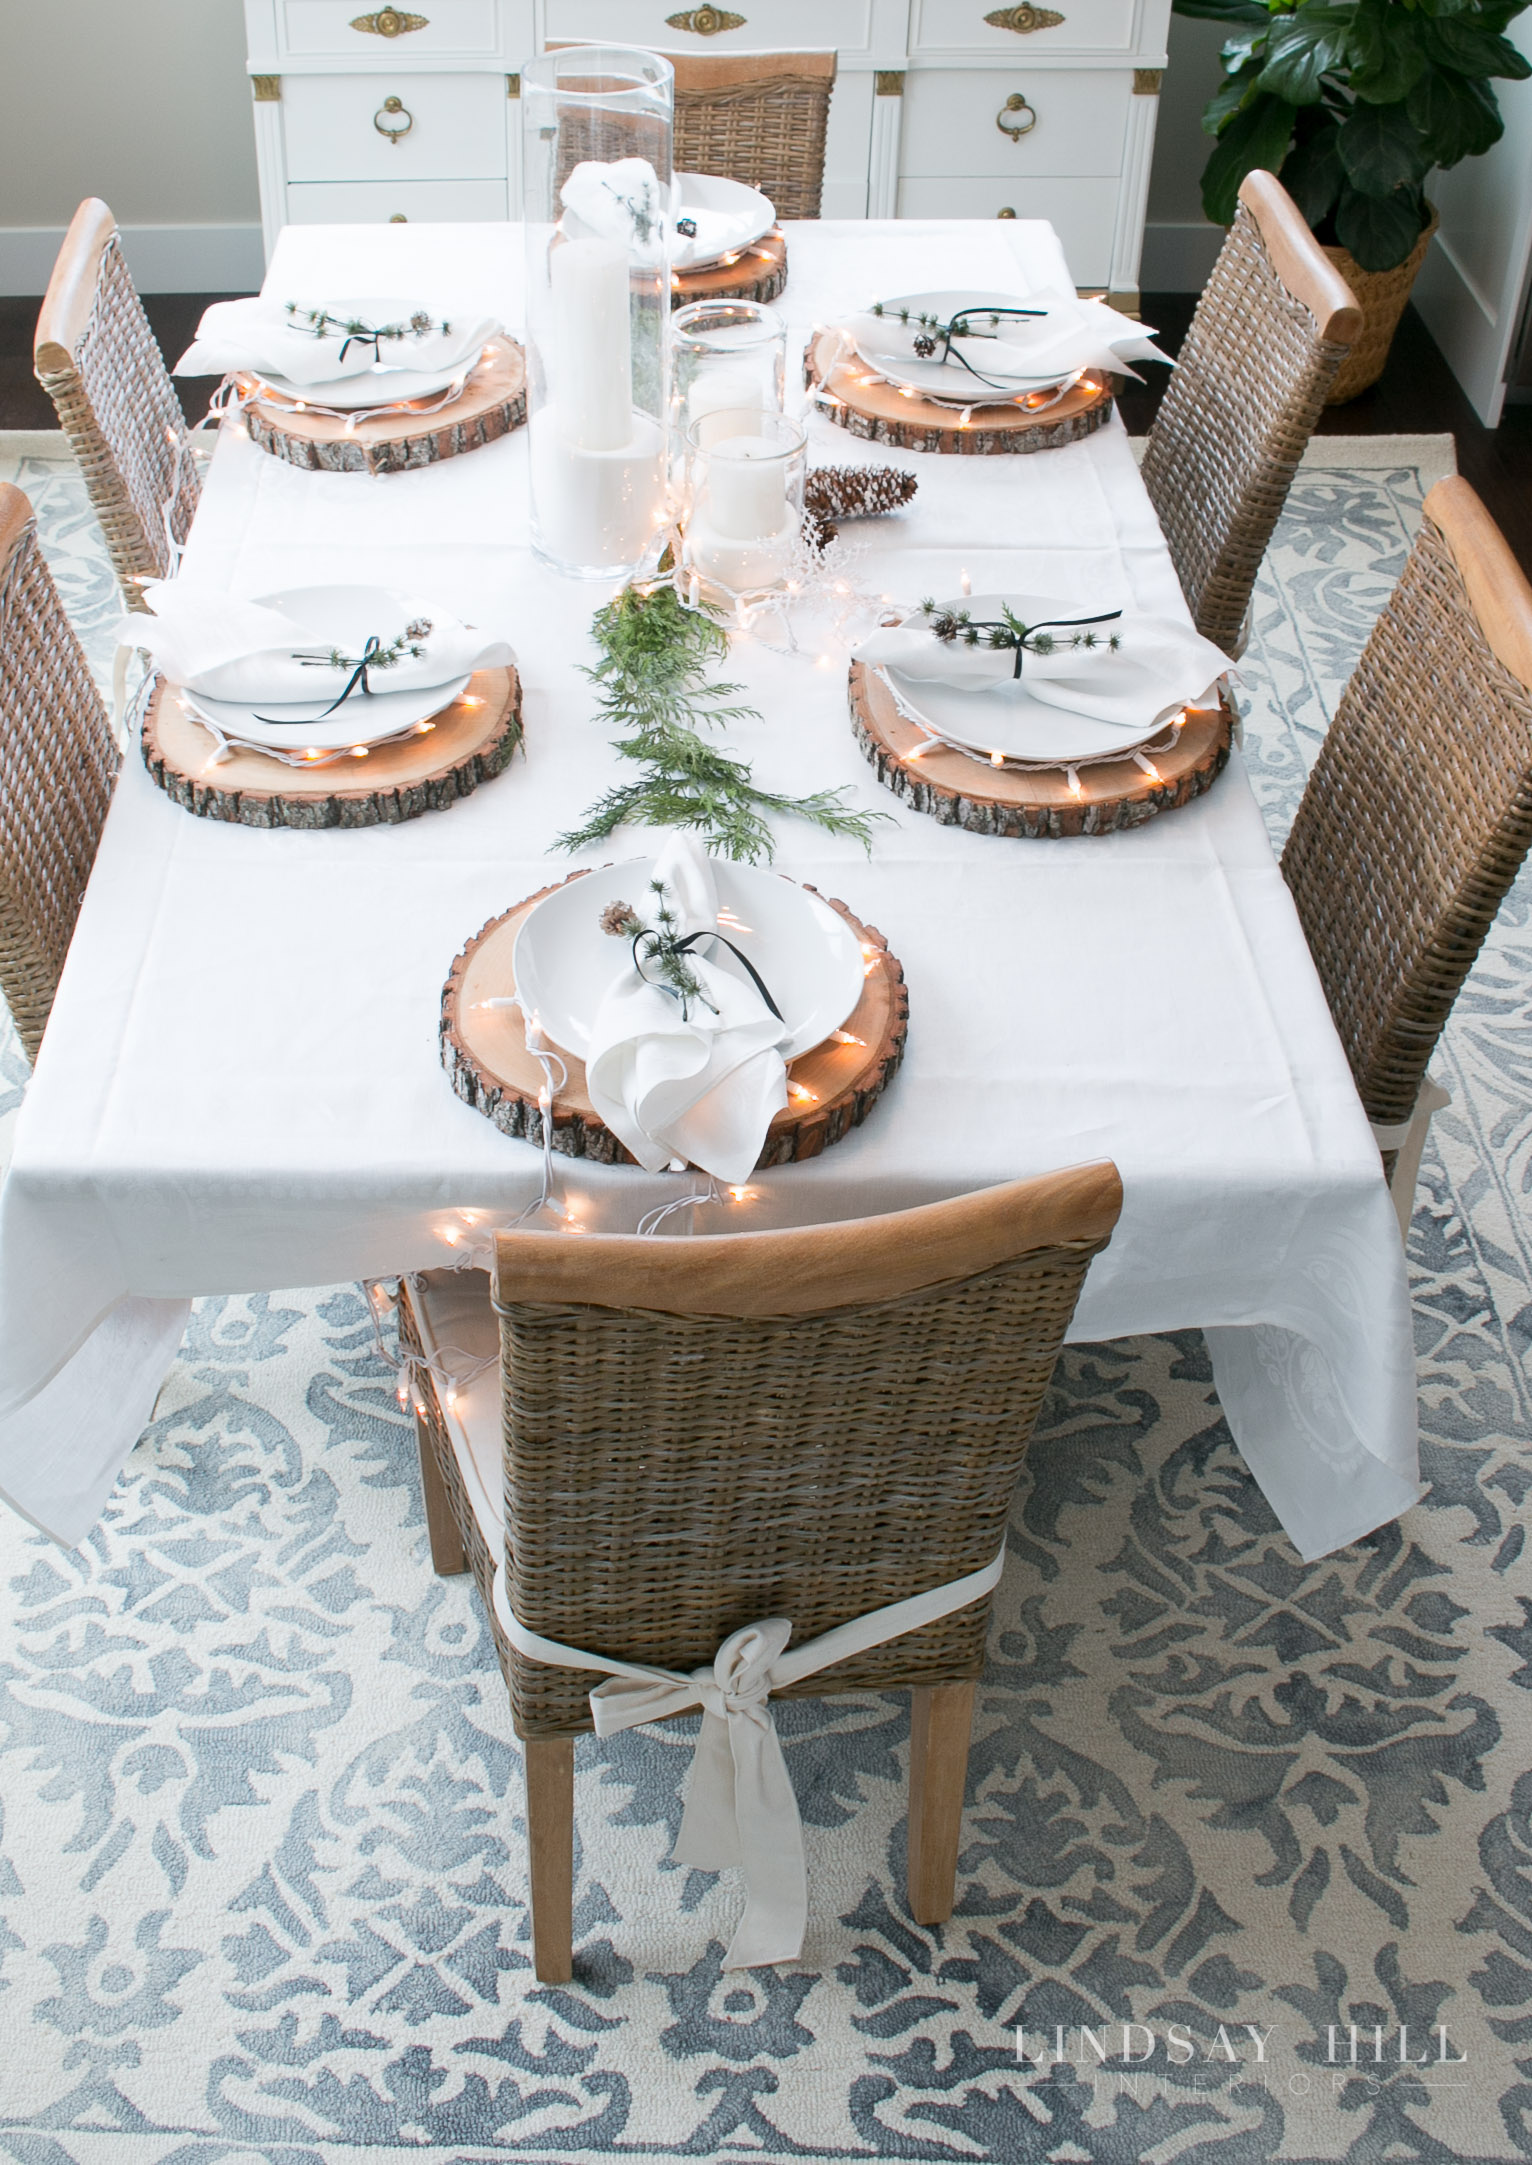 lindsay hill interior holiday dining table